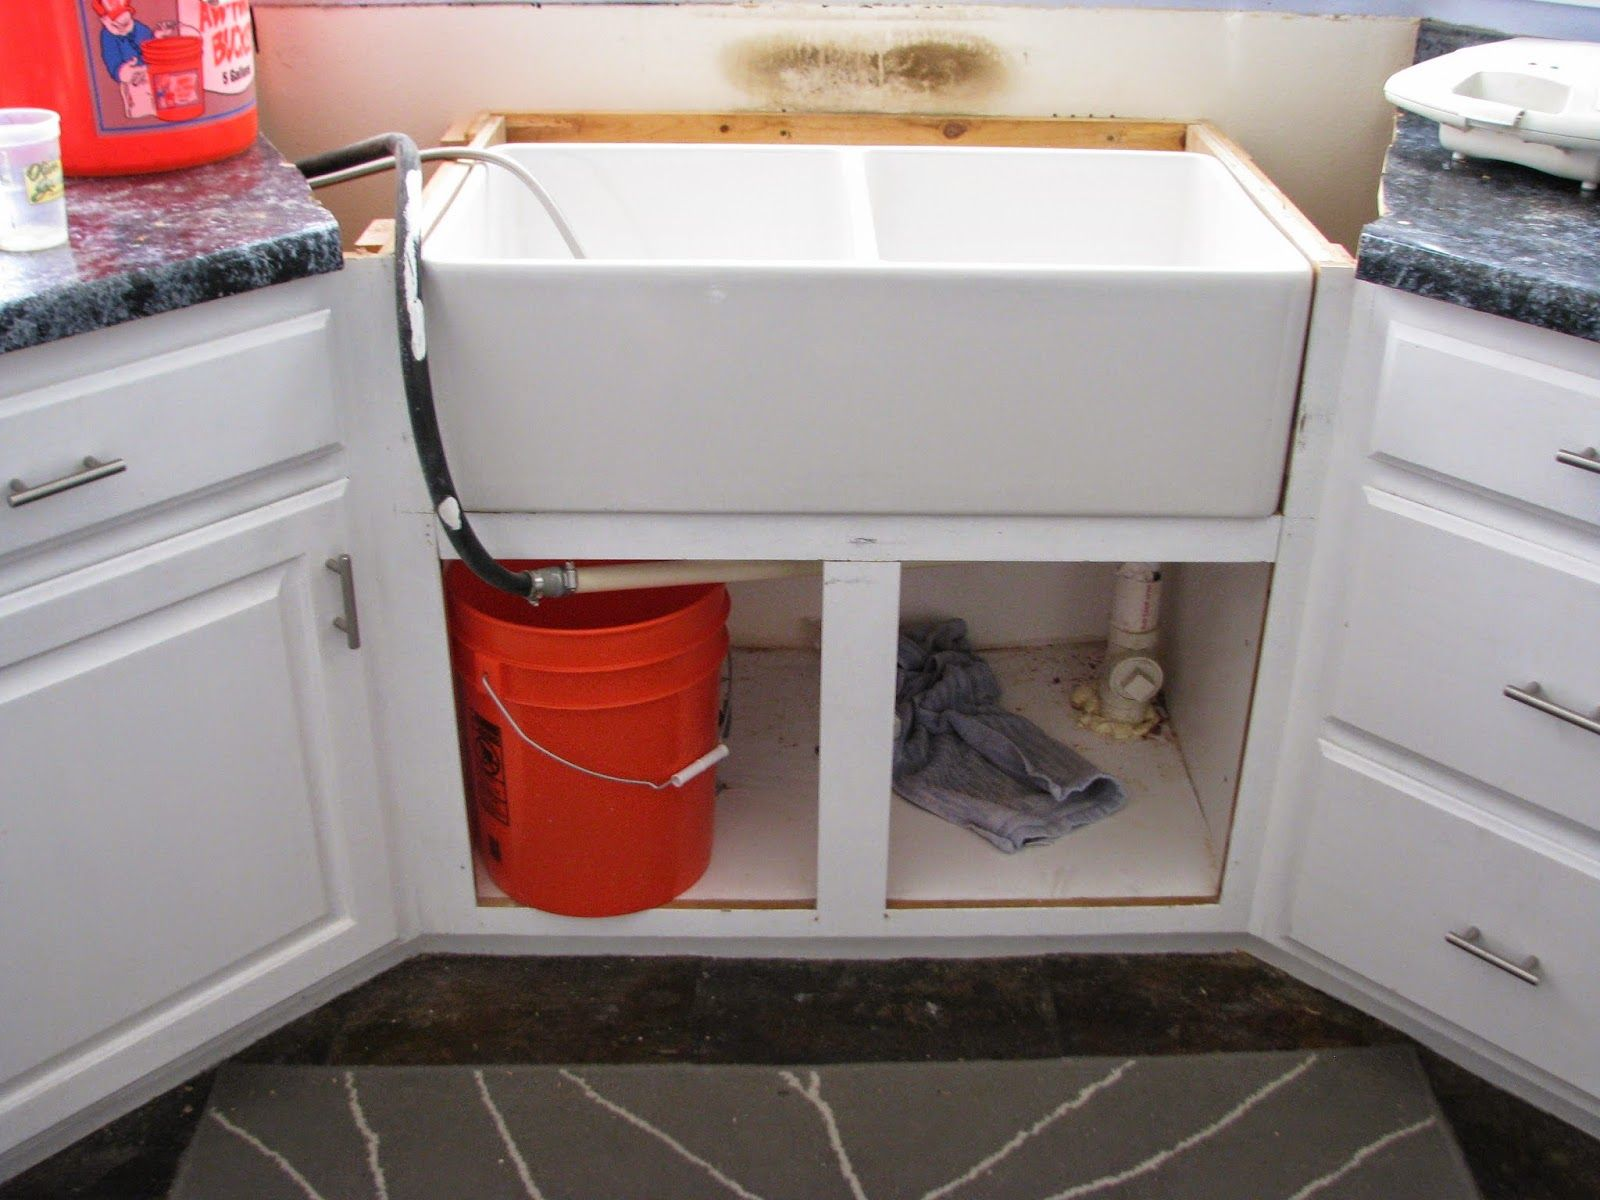 My So Called Diy Blog Resize Your Existing Cabinet And Doors To Fit An Apron Front Sink In 2020 Kitchen Sink Diy Apron Front Sink Cabinet Remodel